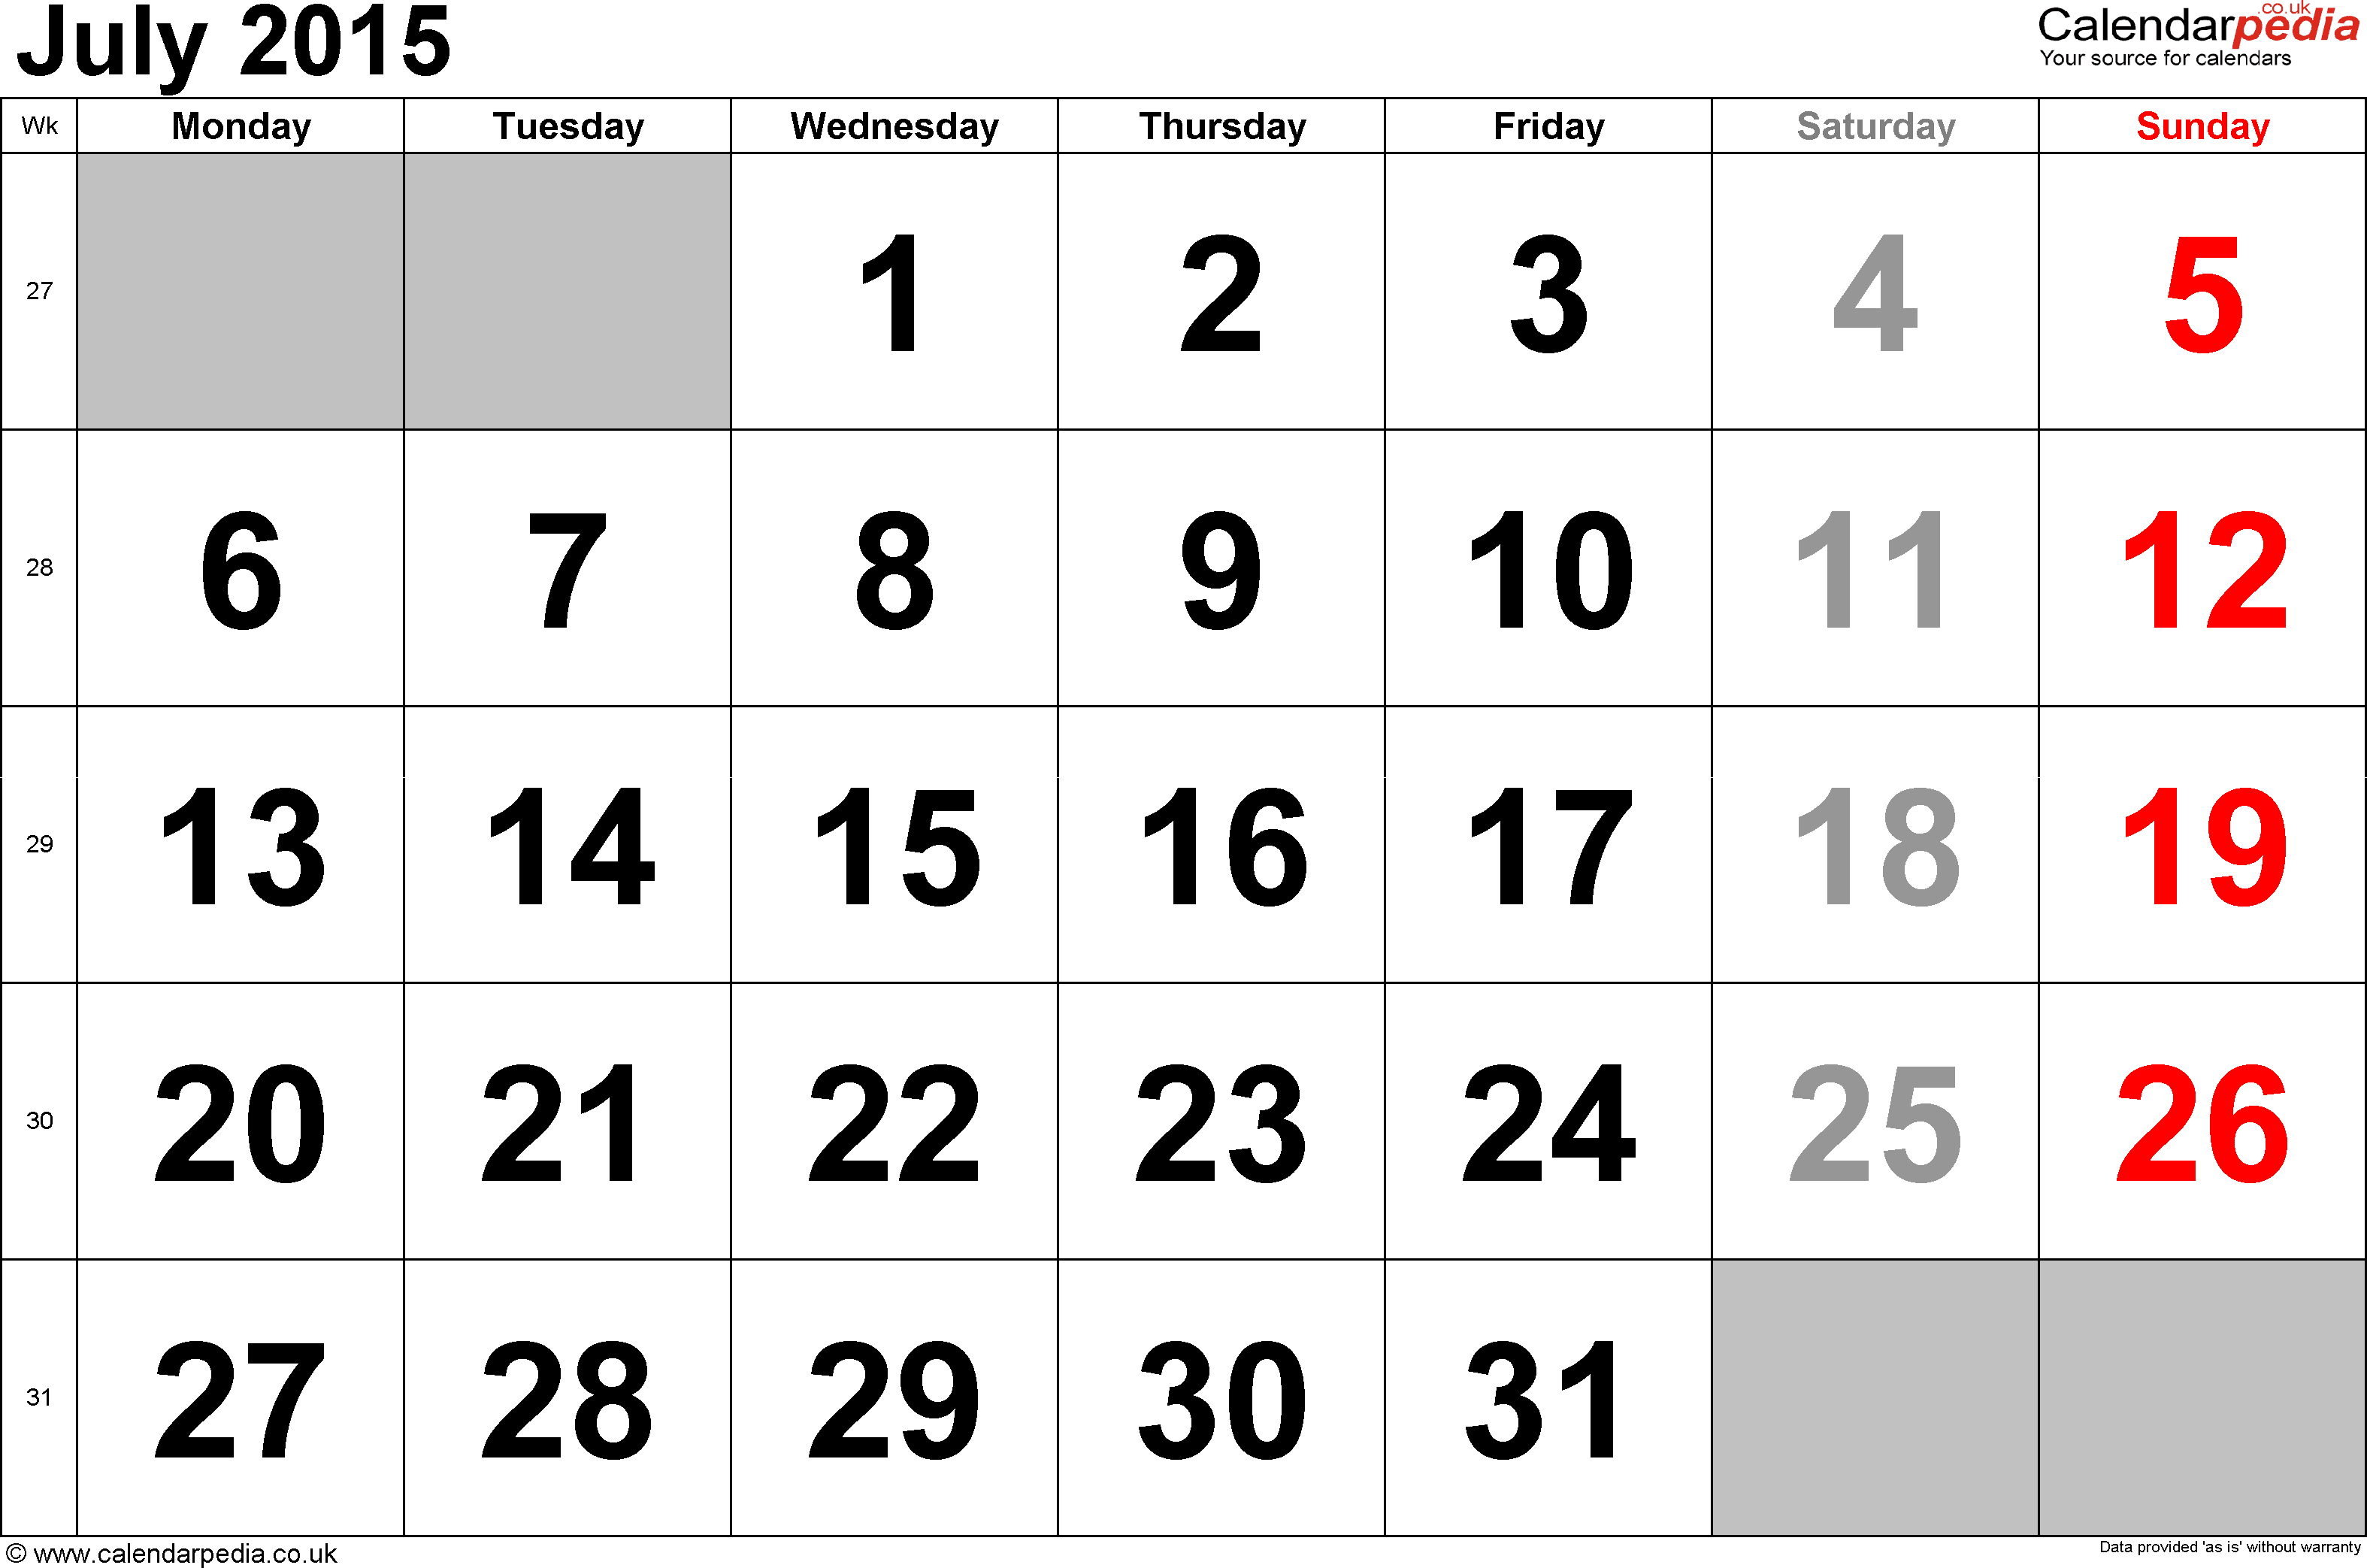 Calendar July 2015, landscape orientation, large numerals, 1 page, with UK bank holidays and week numbers